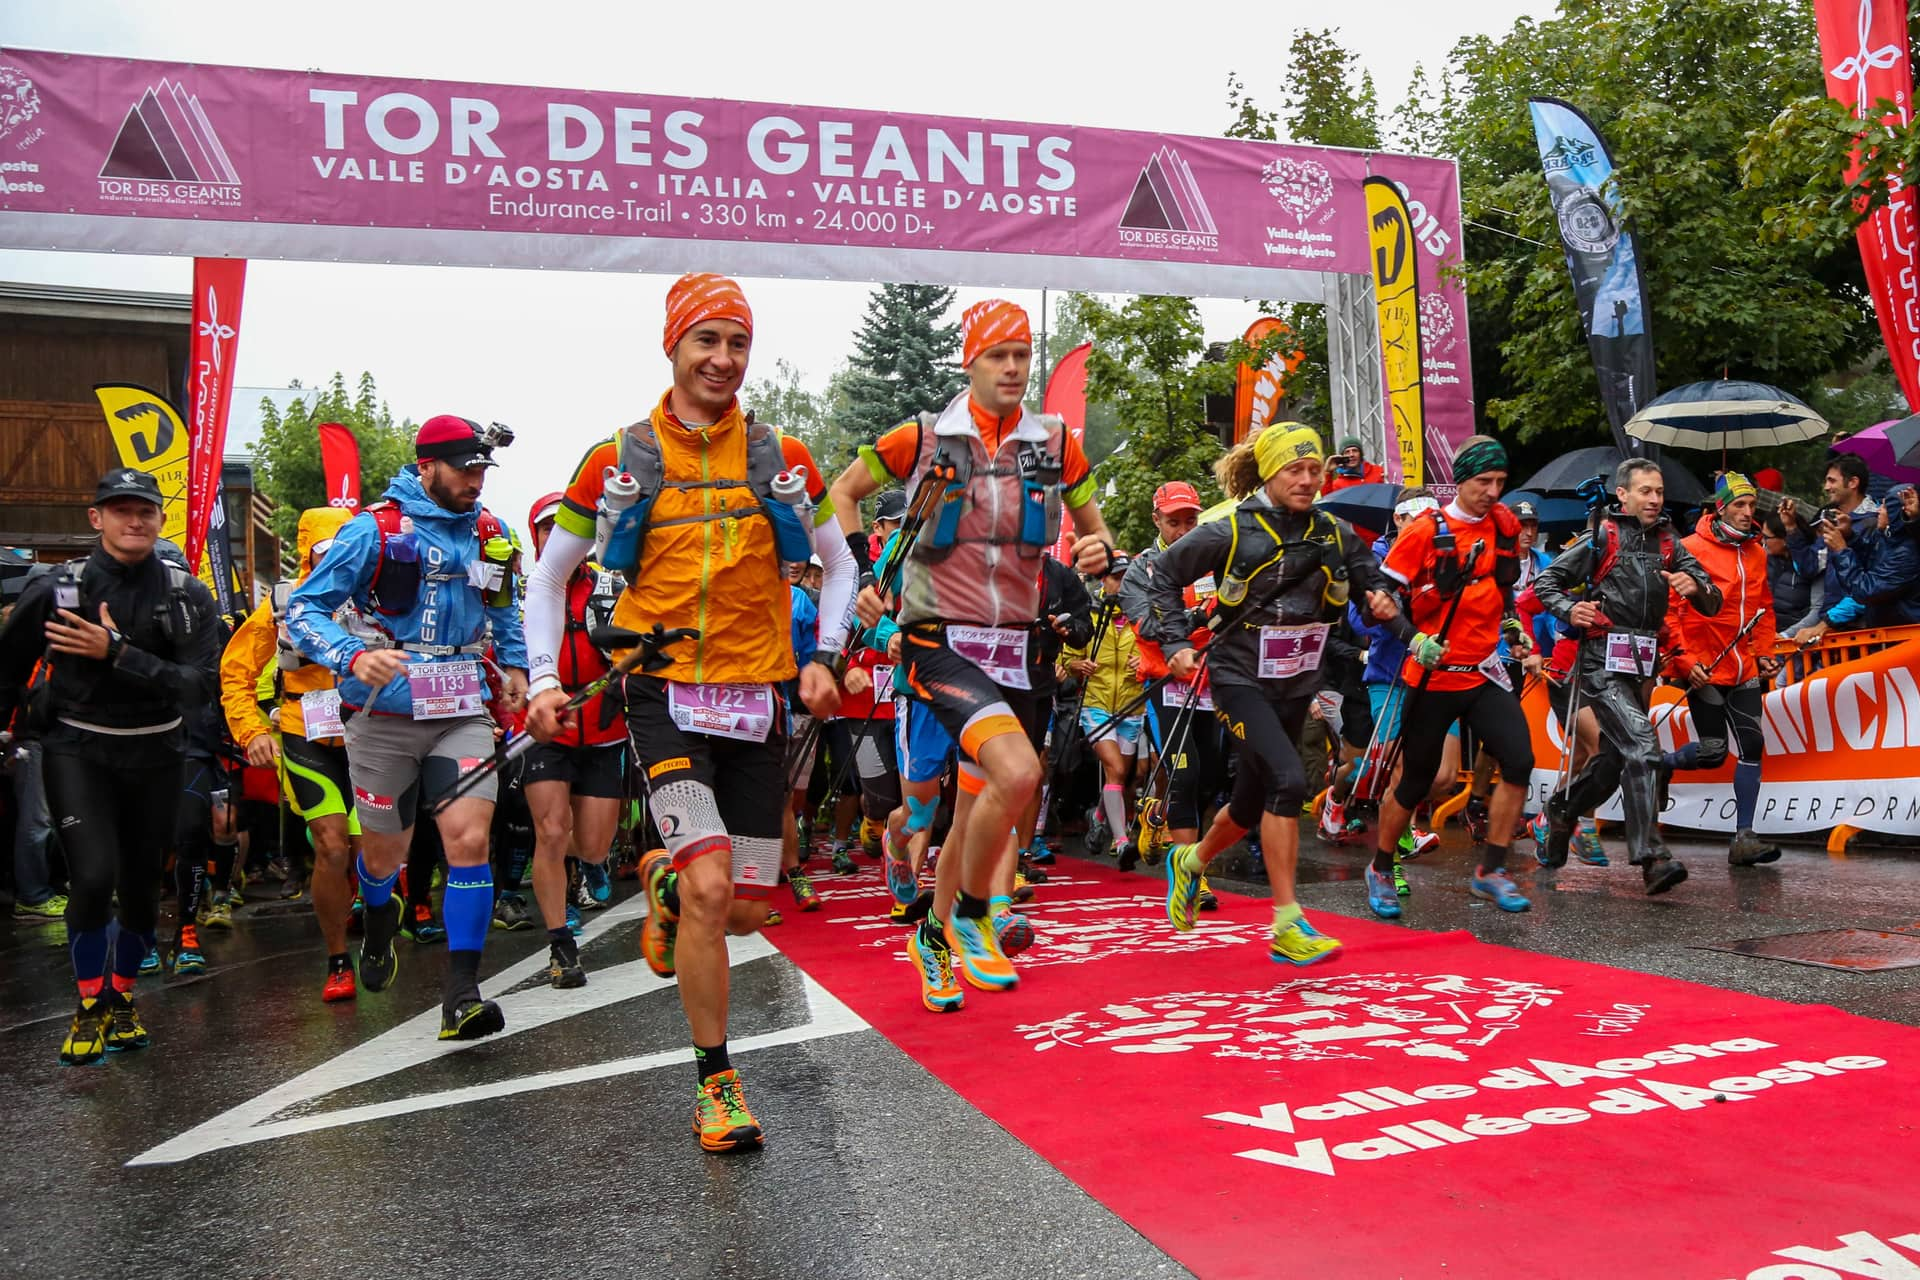 Best Ultra Marathons in Europe - tor des geants